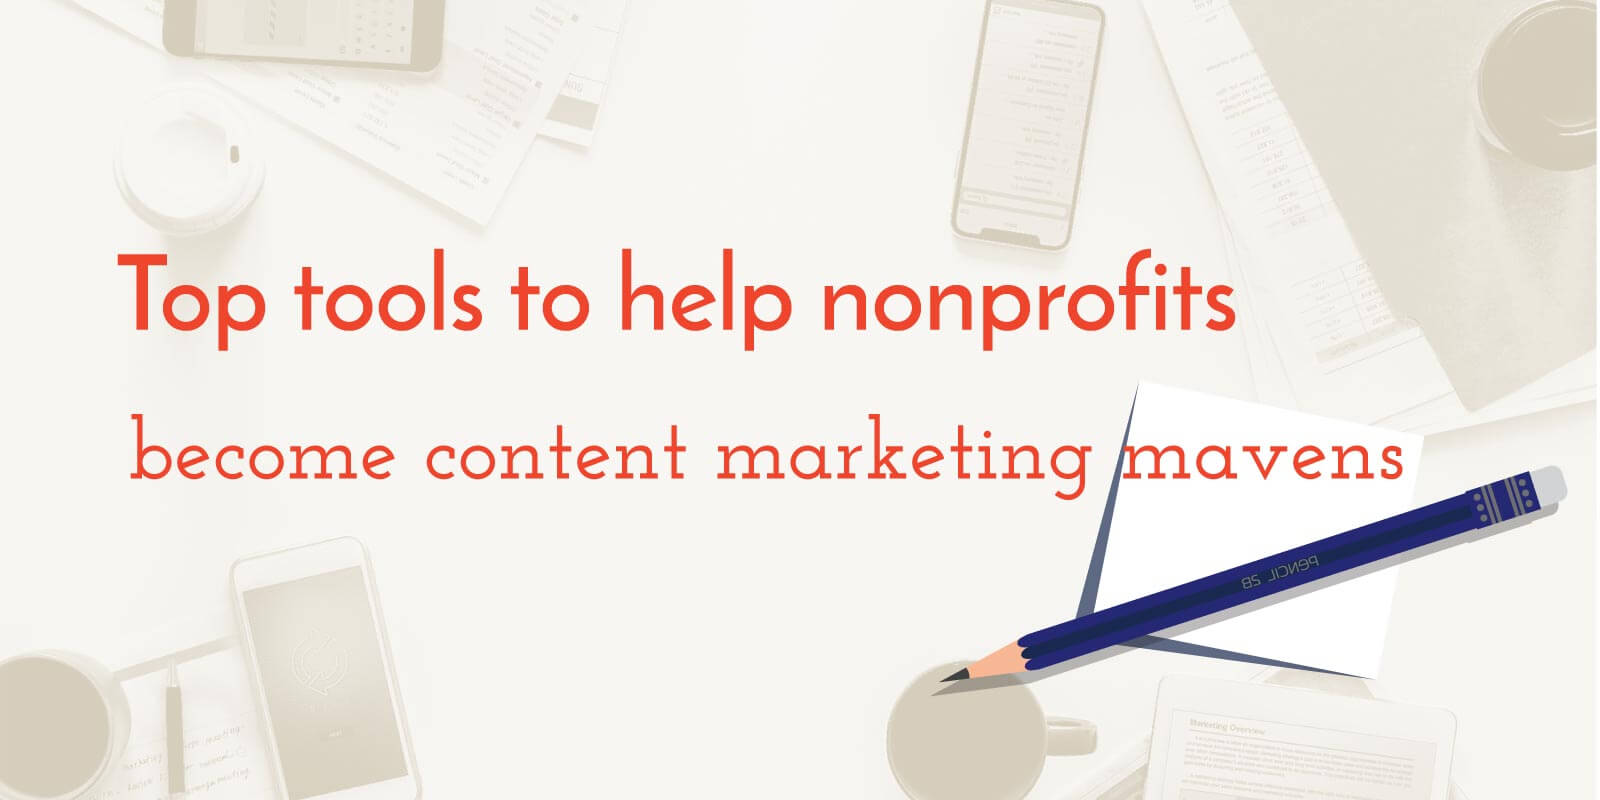 content-marketing-tools-nonprofits